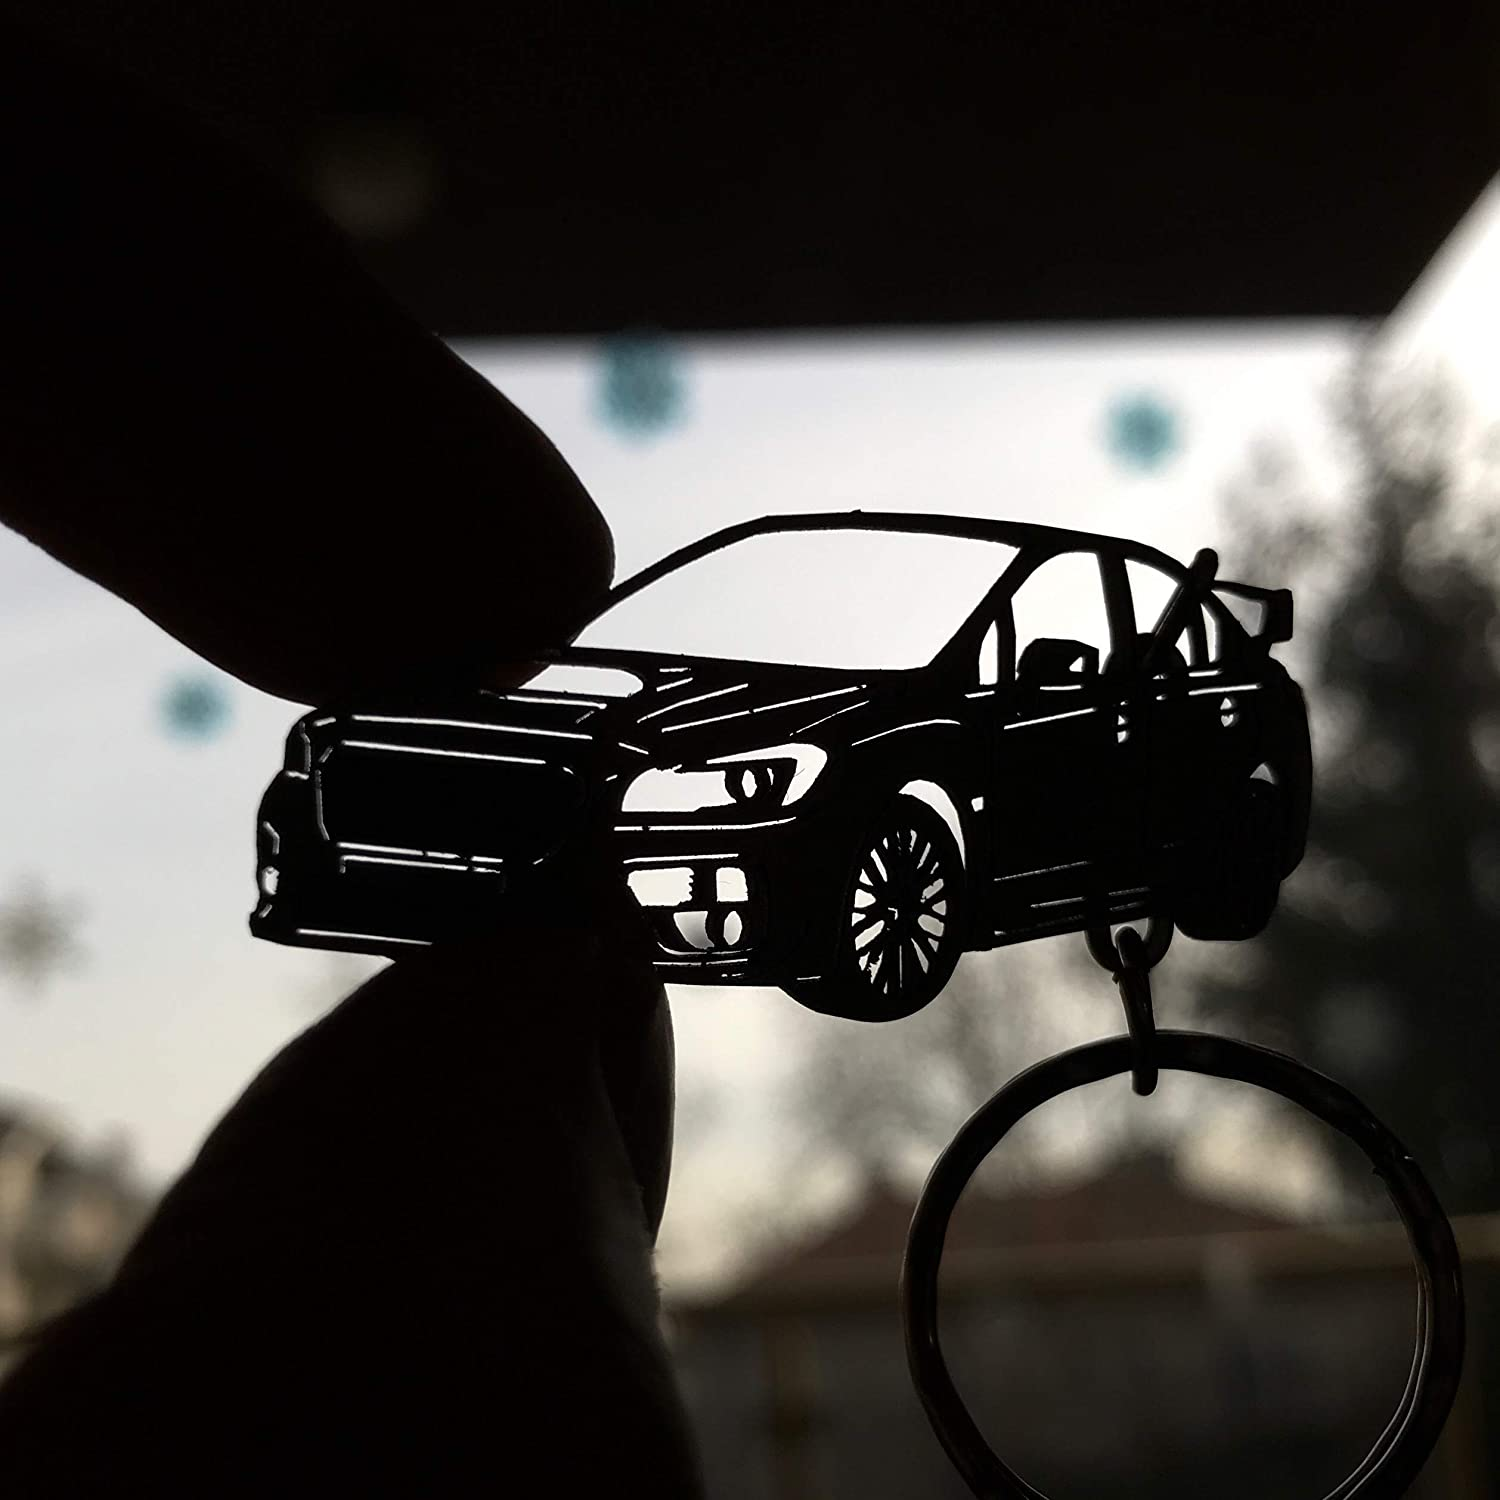 Subaru Impreza WRX key chain Stainless Steel Key ring for Enthusiasts or for gift